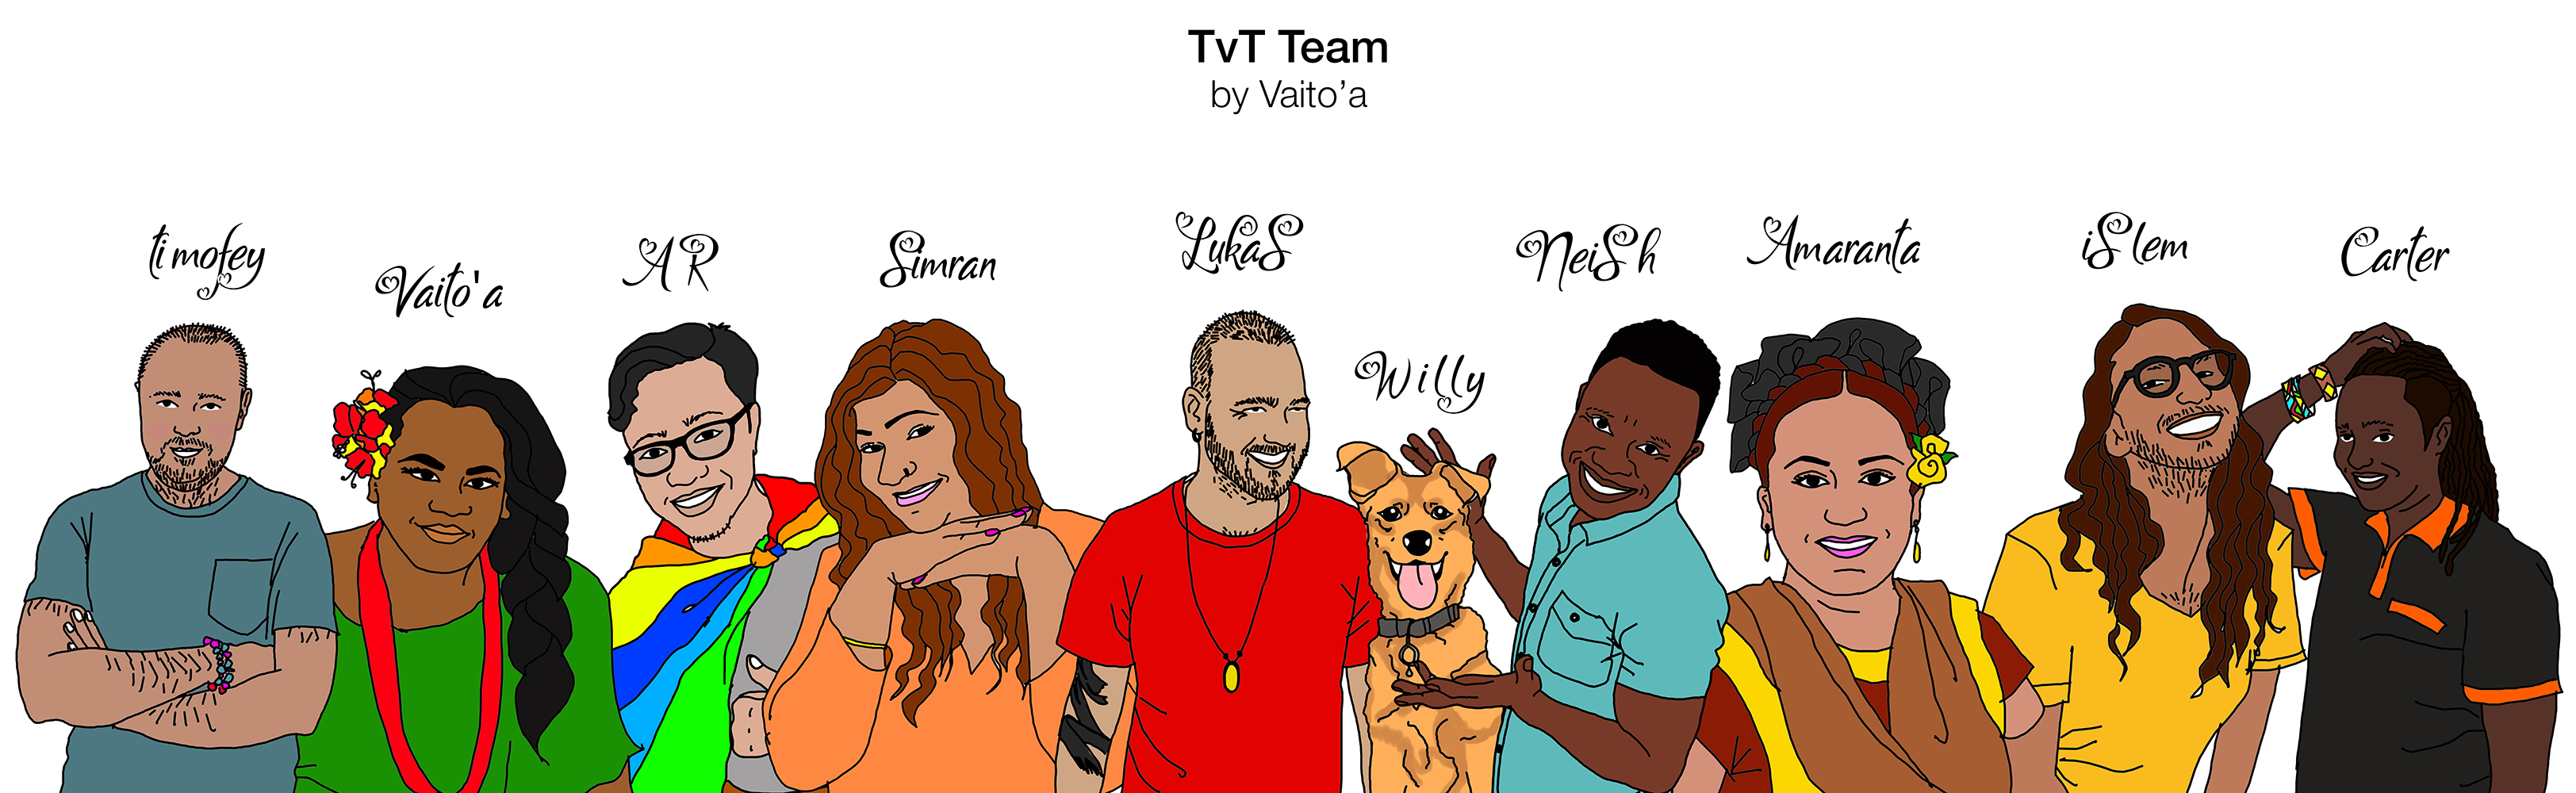 TvT Team Illustrations by Vaito'a